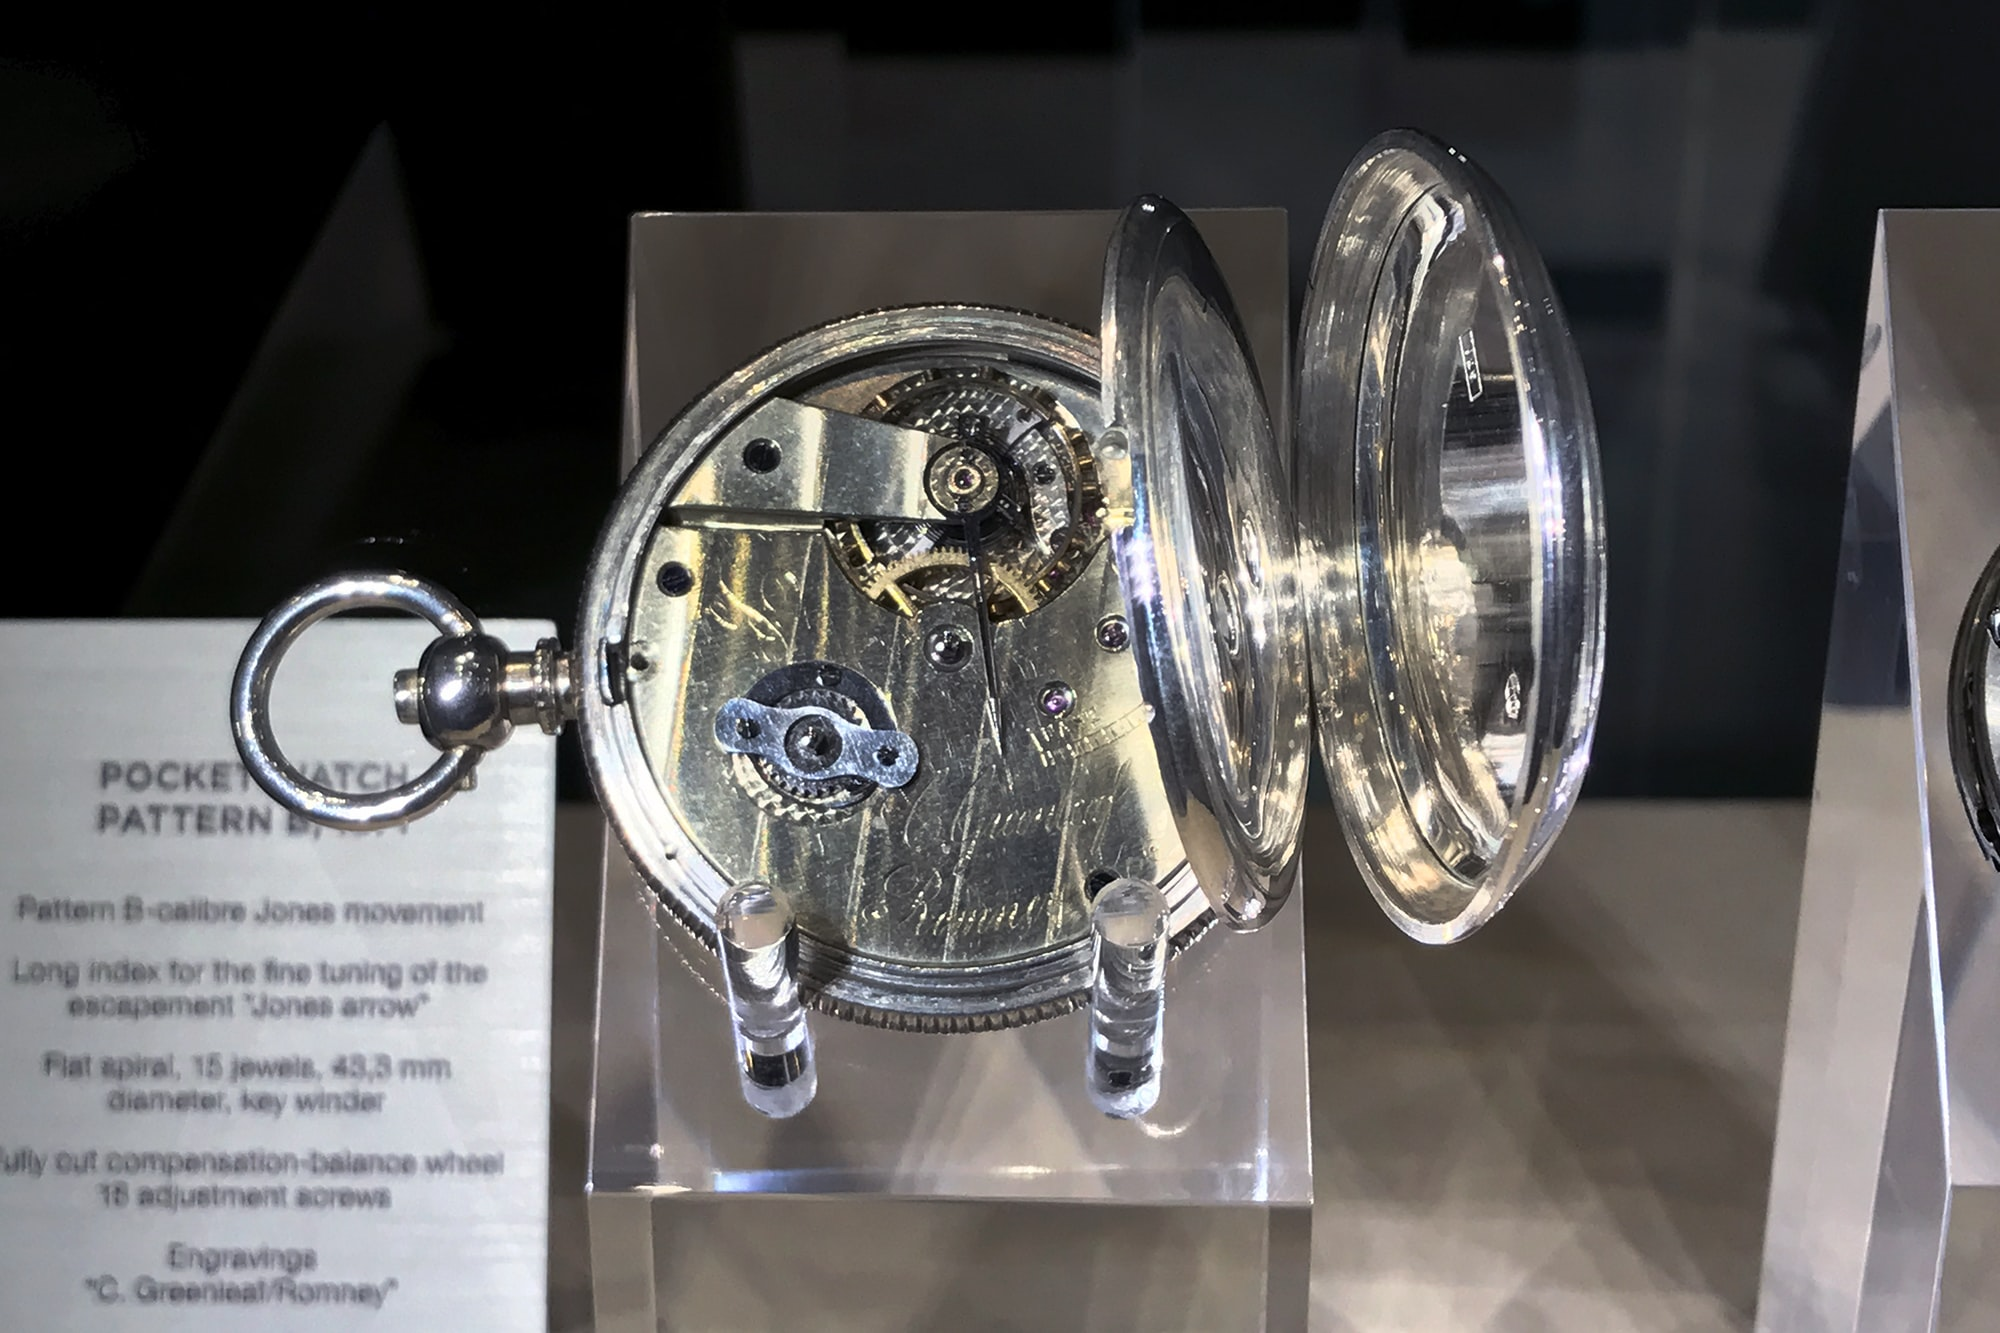 Photo Report: HODINKEE And IWC Celebrate The Portugieser Hand-Wound Tourbillion Edition 'D.H. Craig USA' In New York Photo Report: HODINKEE And IWC Celebrate The Portugieser Hand-Wound Tourbillion Edition 'D.H. Craig USA' In New York 0164 copy